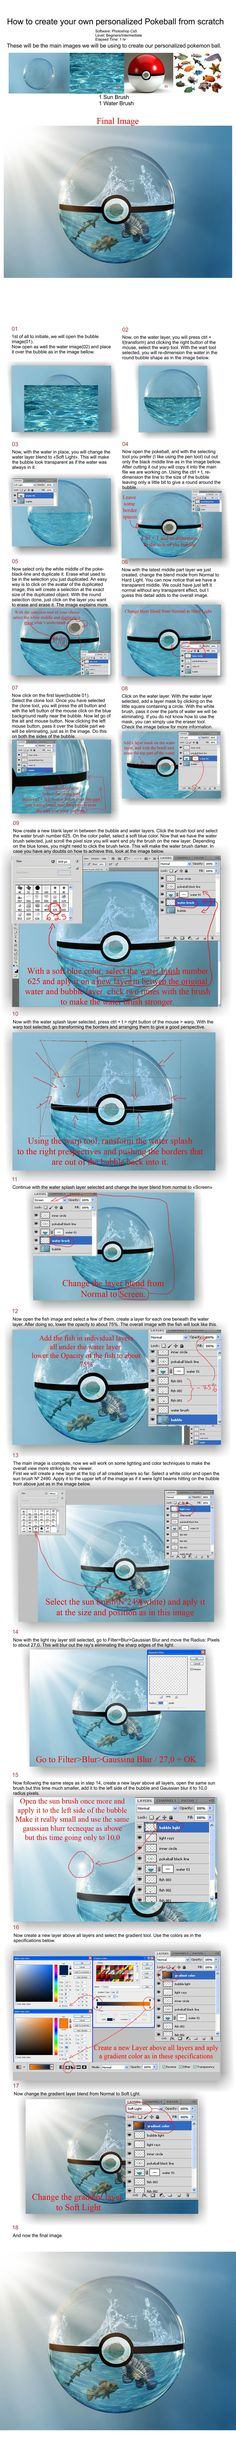 Pokemon Bubble Tutorial - Do this but search realistic pokemon and put the realistic evolutions of squirtle in it instead it looks AMAZING!